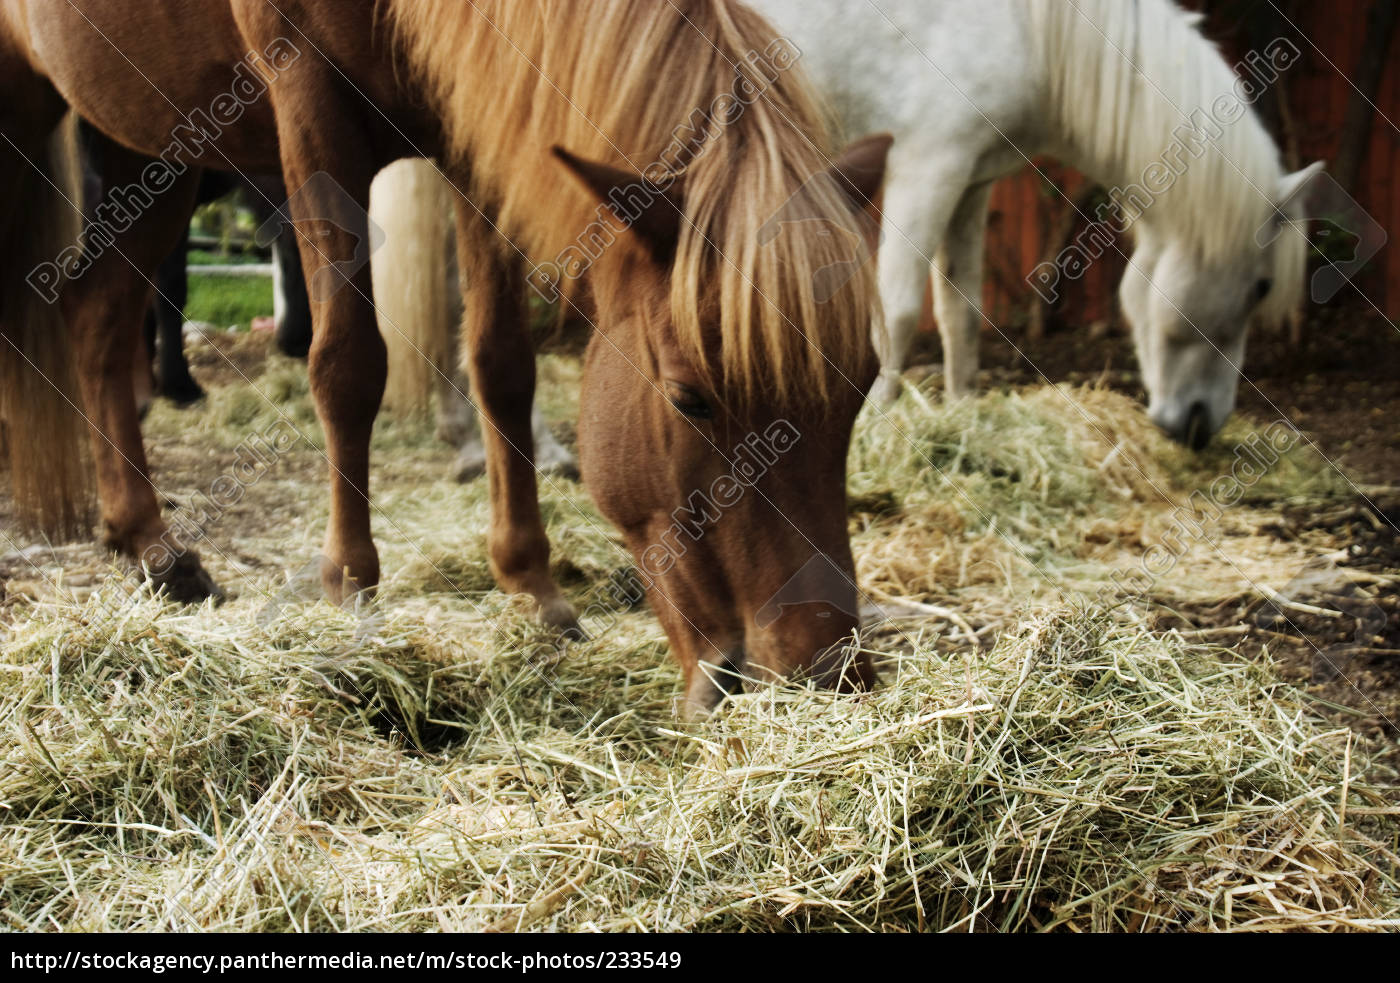 eat, iceland, horses, when, hay - 233549